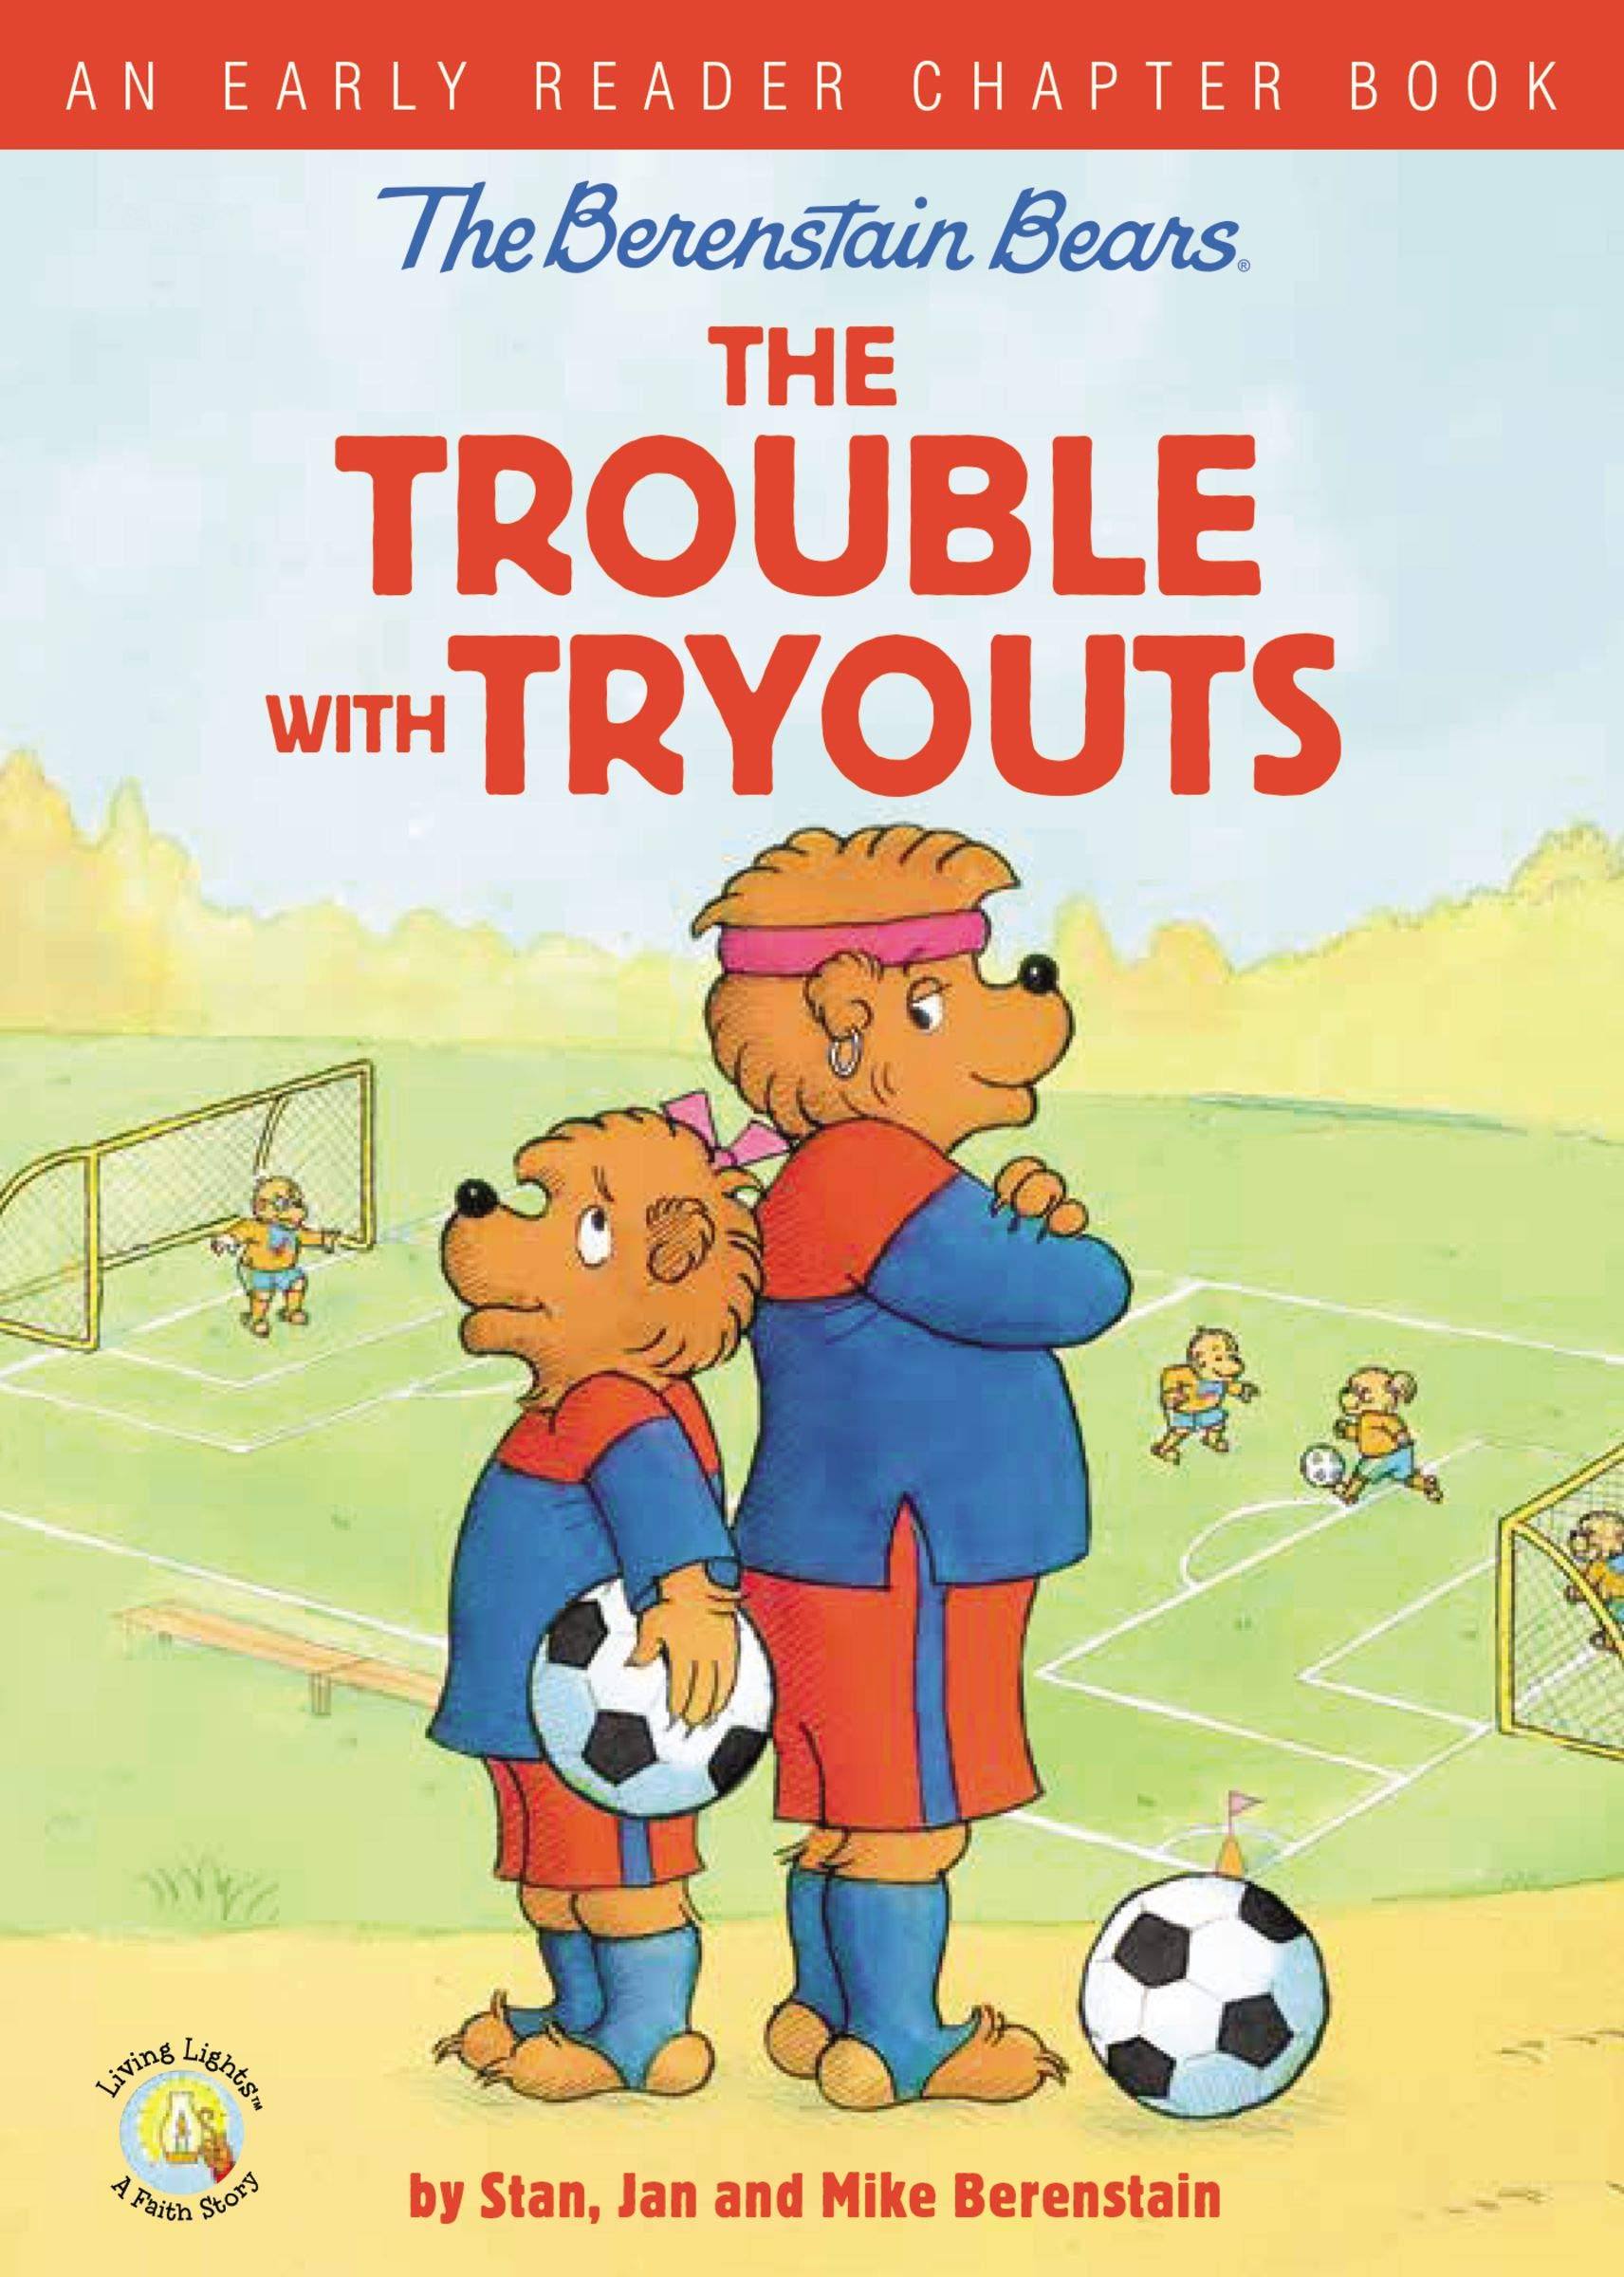 Amazon com: The Berenstain Bears The Trouble with Tryouts